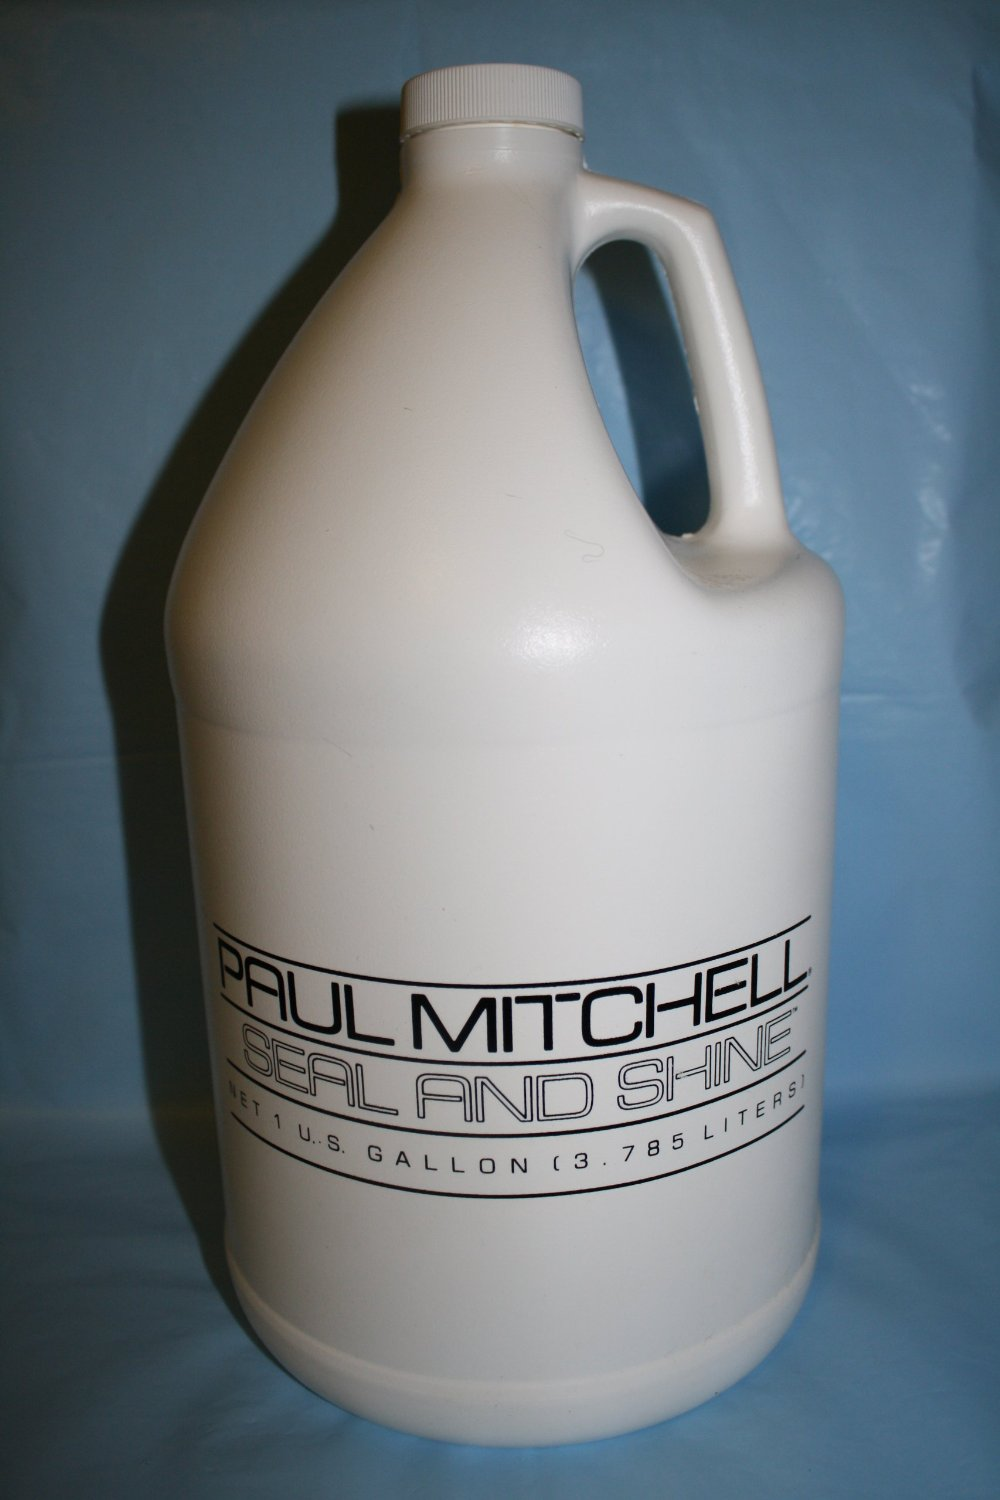 Paul Mitchell Seal And Shine Gallon